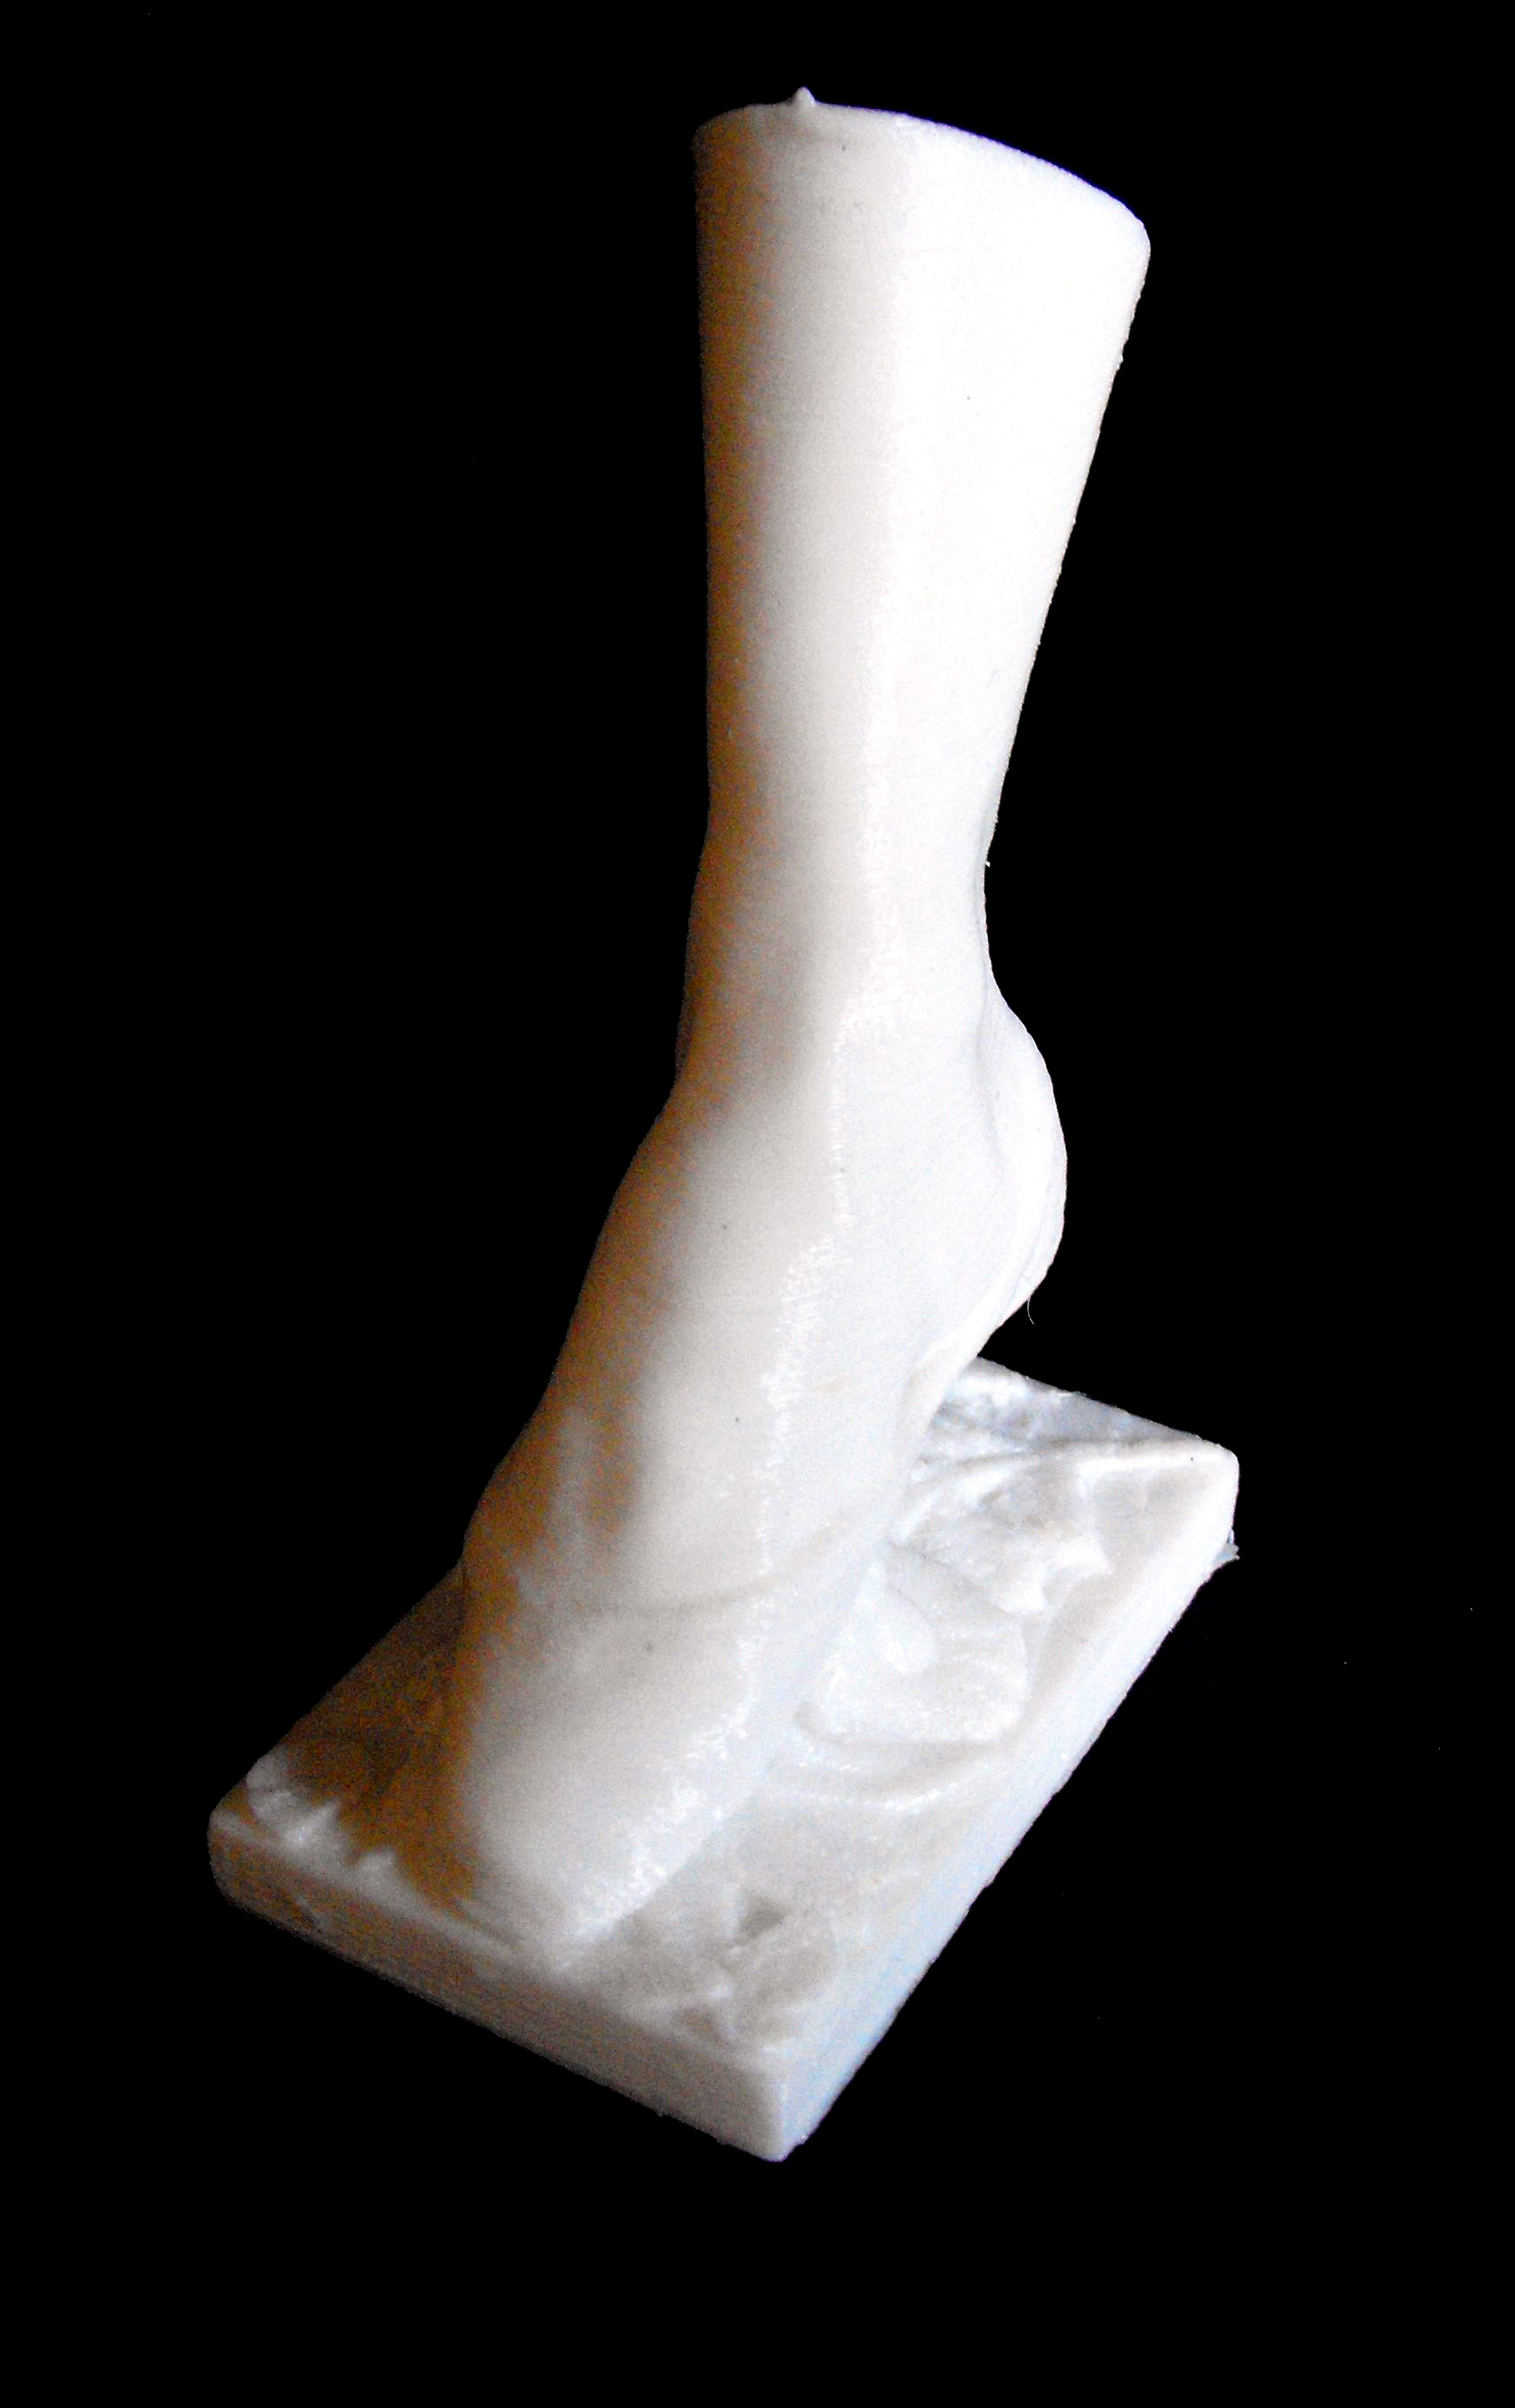 Right Foot of the Dancer Fanny Elssler at The Musée d'Orsay, Paris